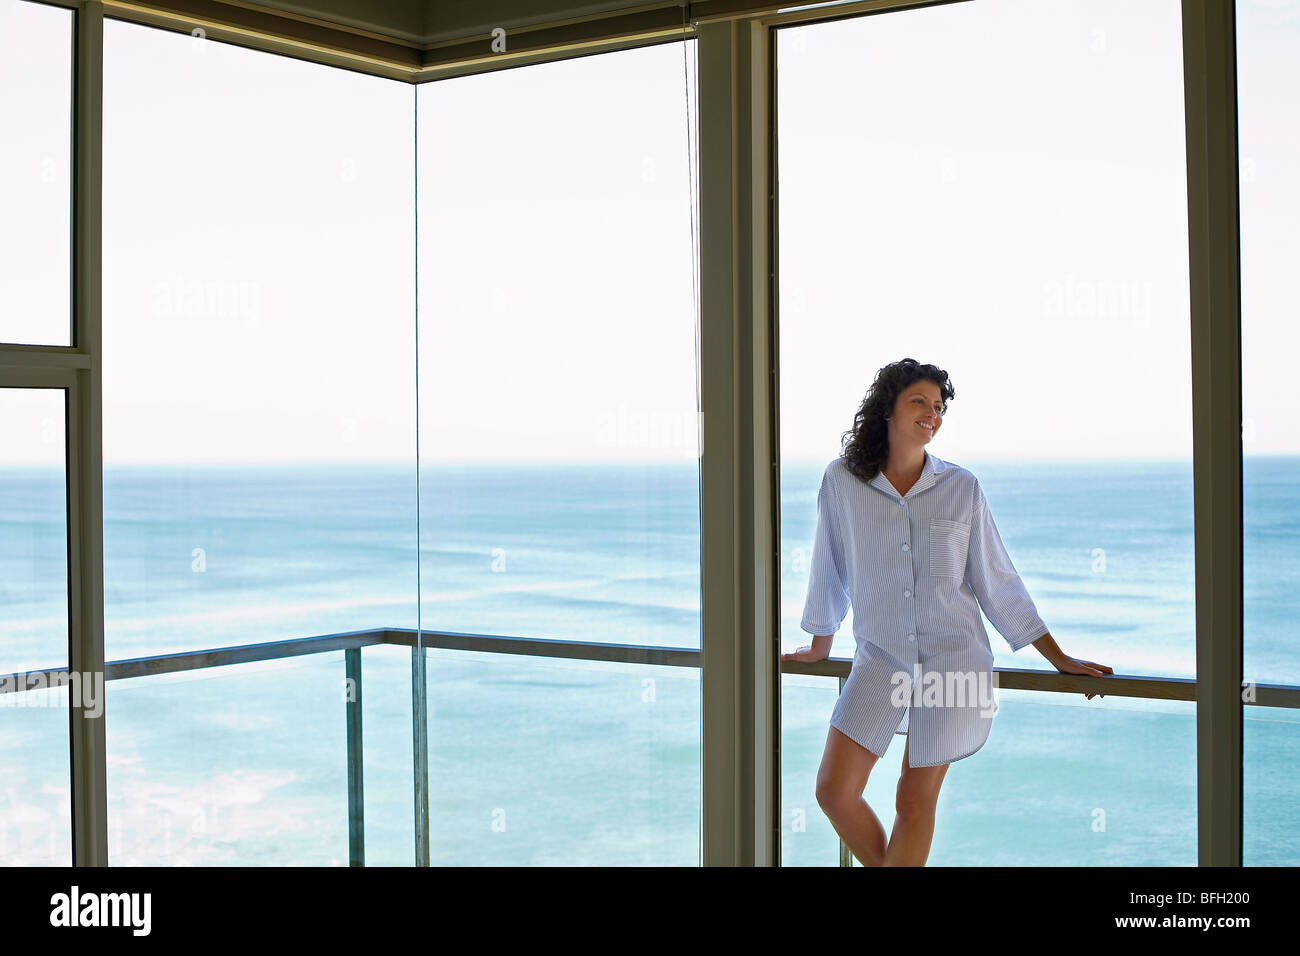 Woman standing on balcony, smiling - Stock Image